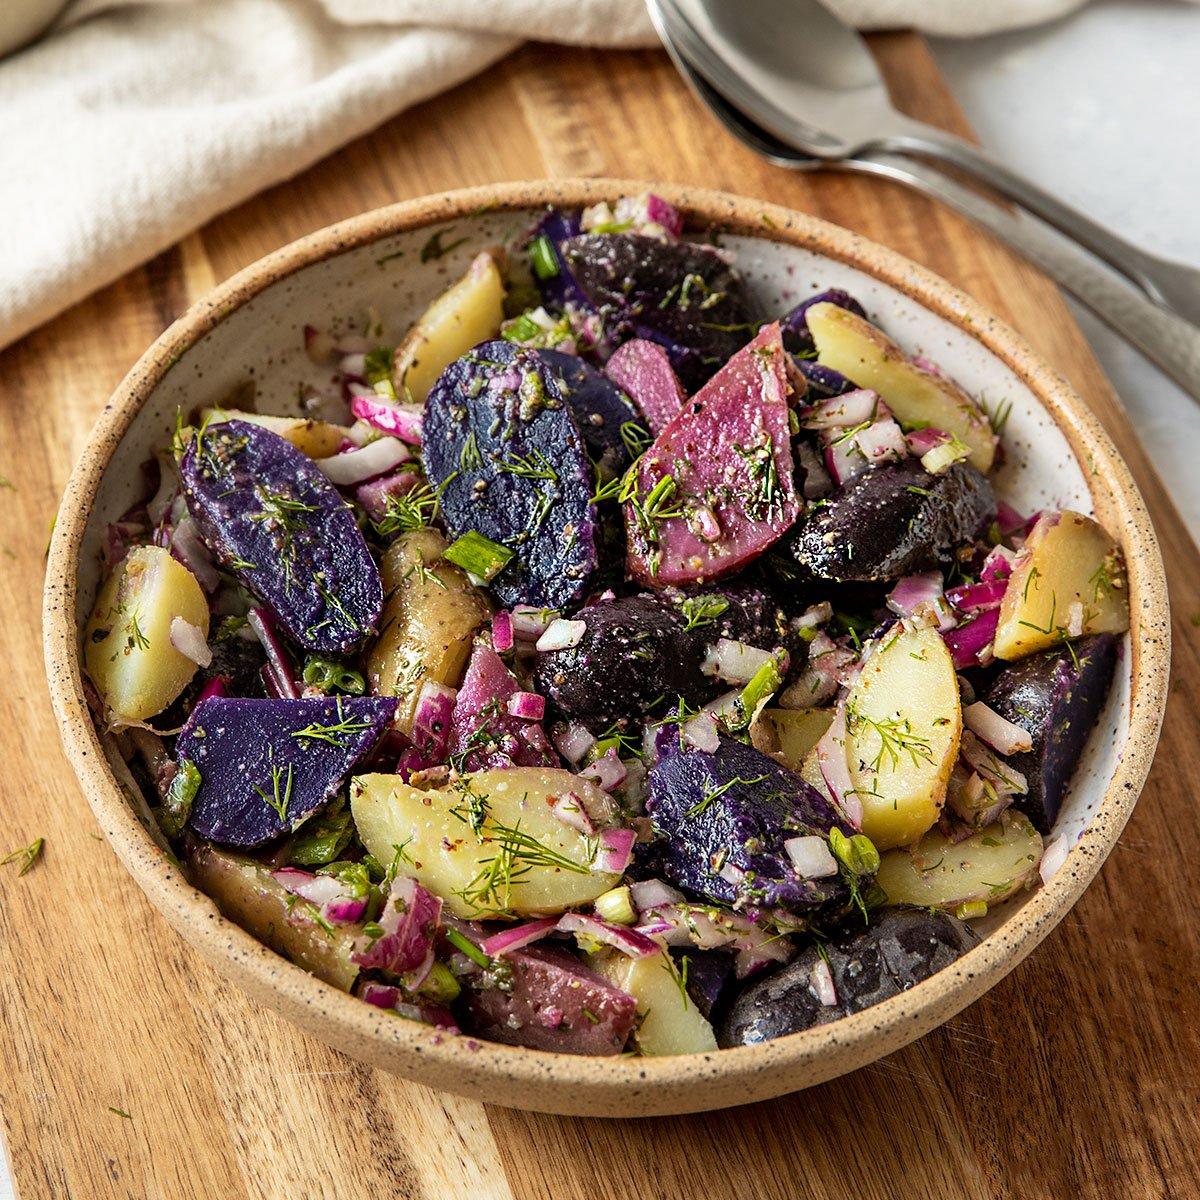 a bowl of purple, pink, and white fingerling potatoes with a dill dressing